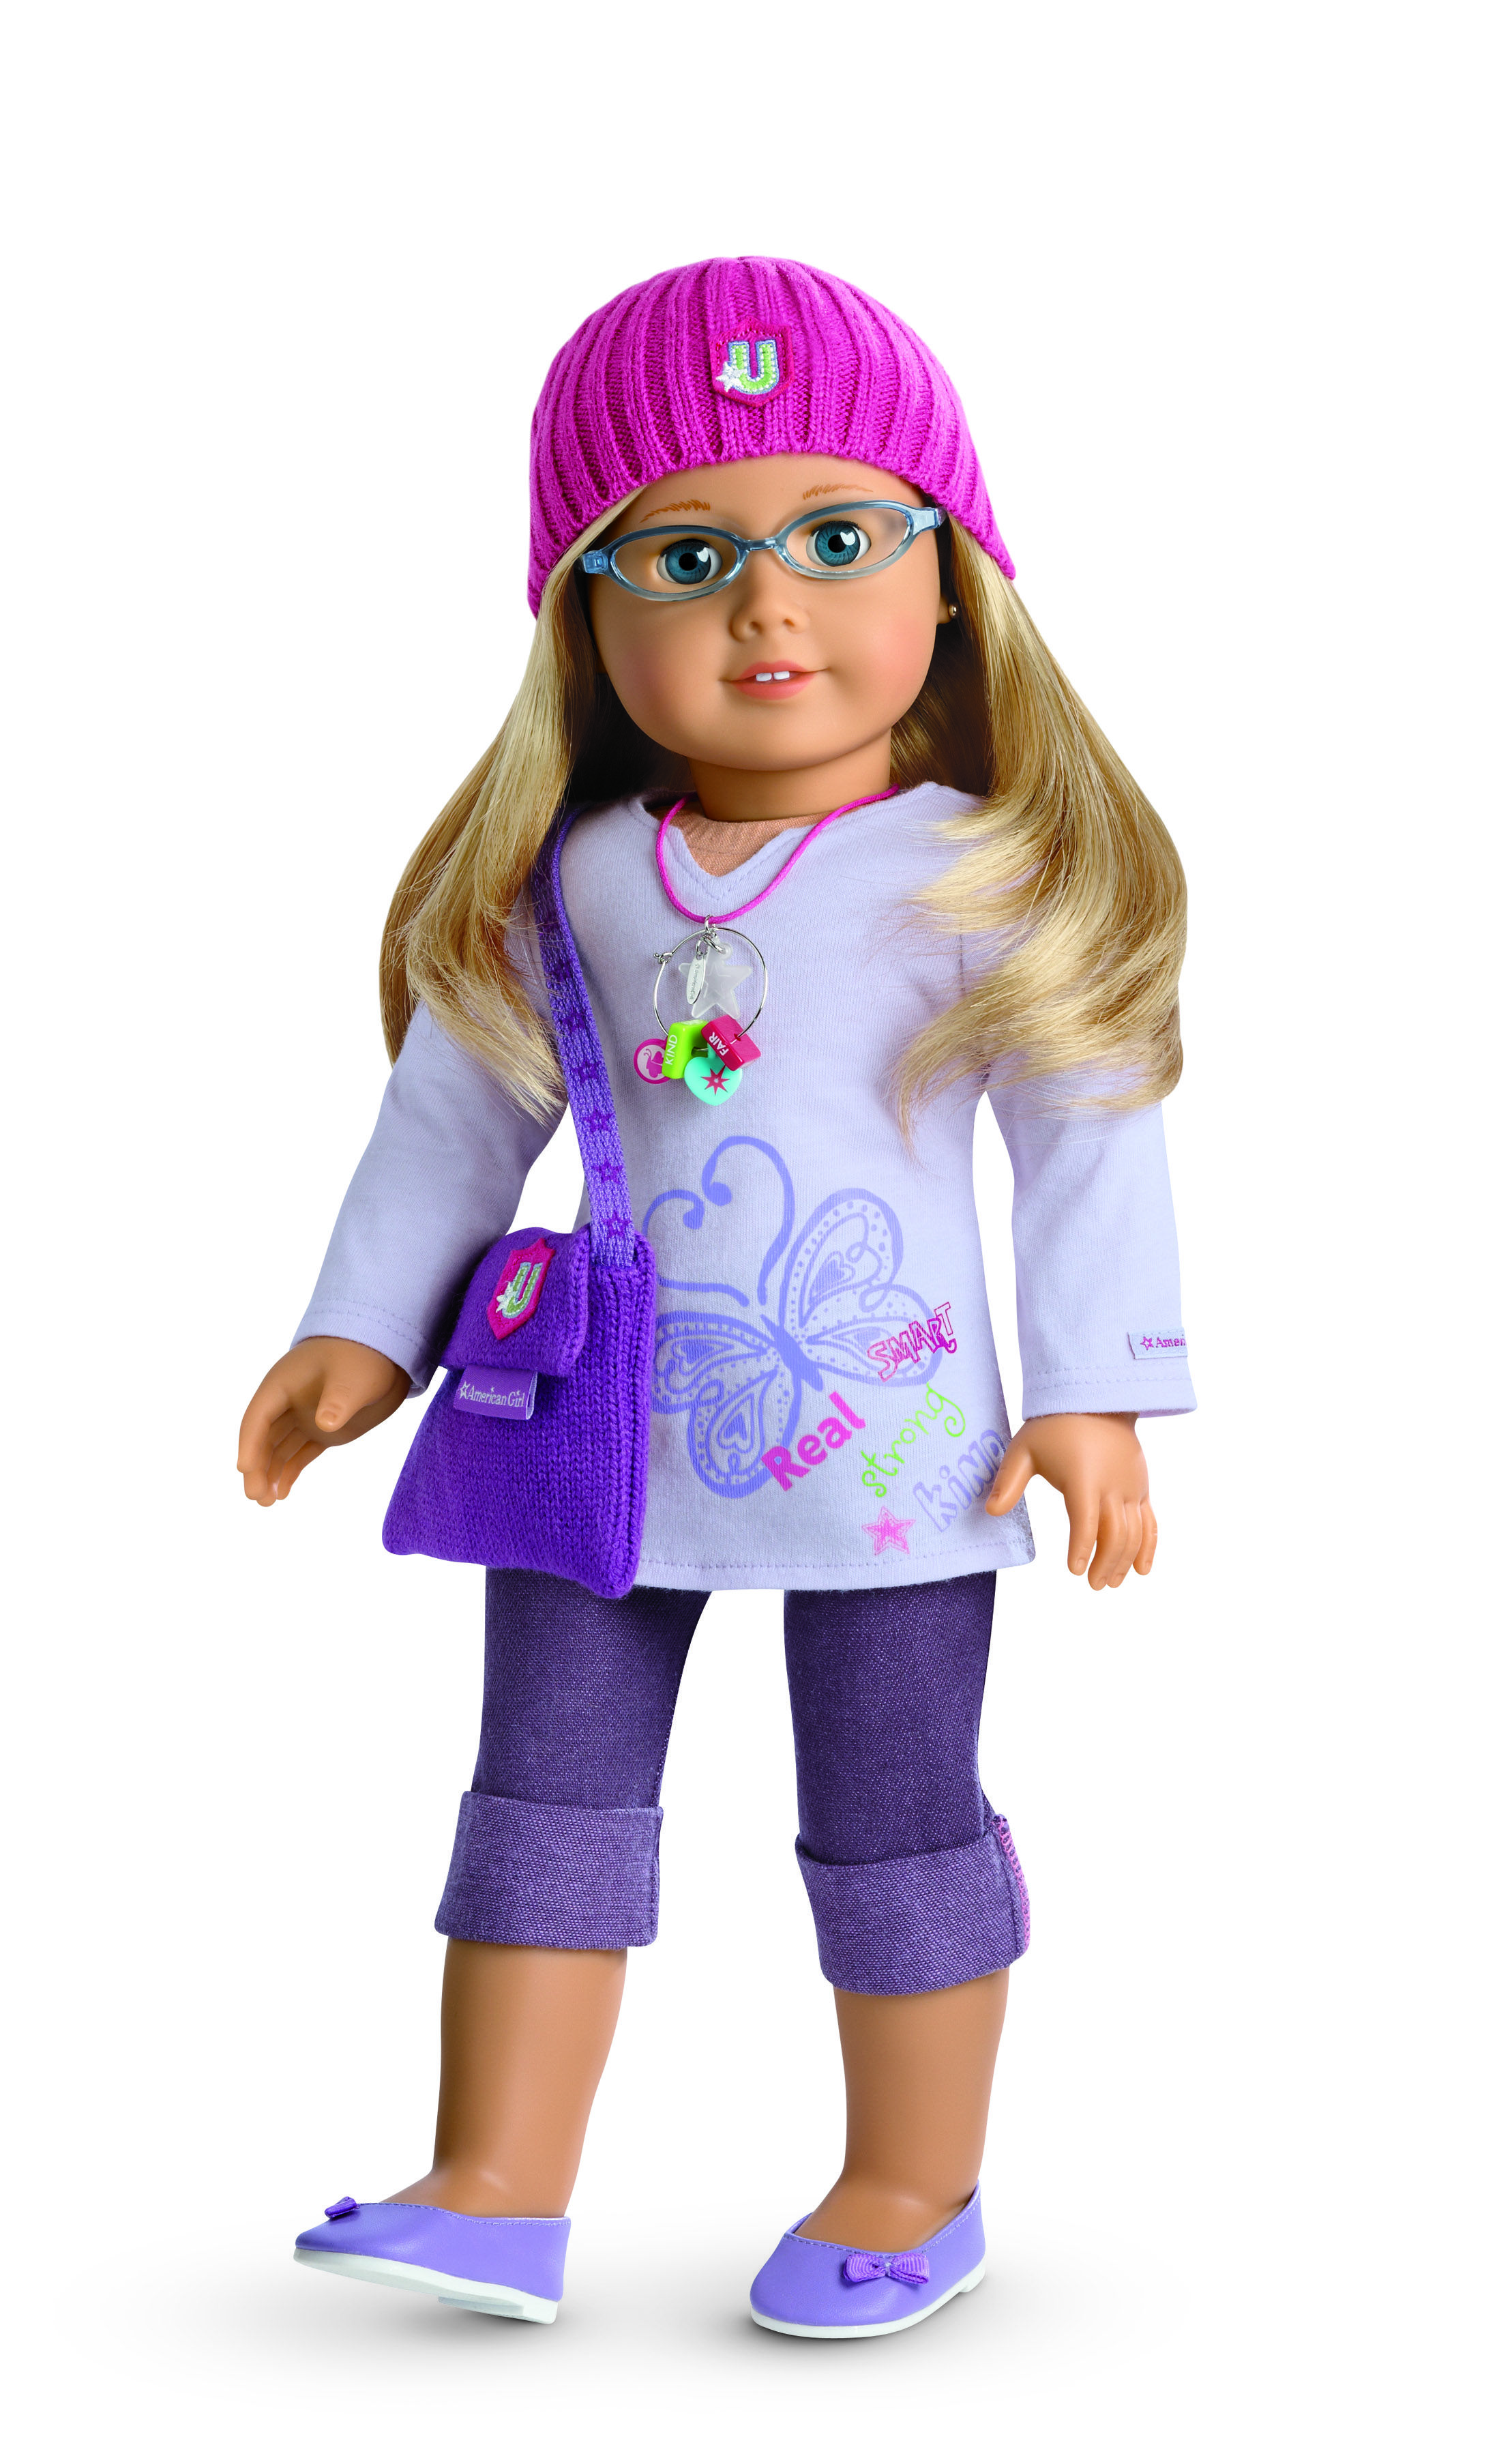 american girl dolls american girl doll original outfits pinterest girl dolls american. Black Bedroom Furniture Sets. Home Design Ideas